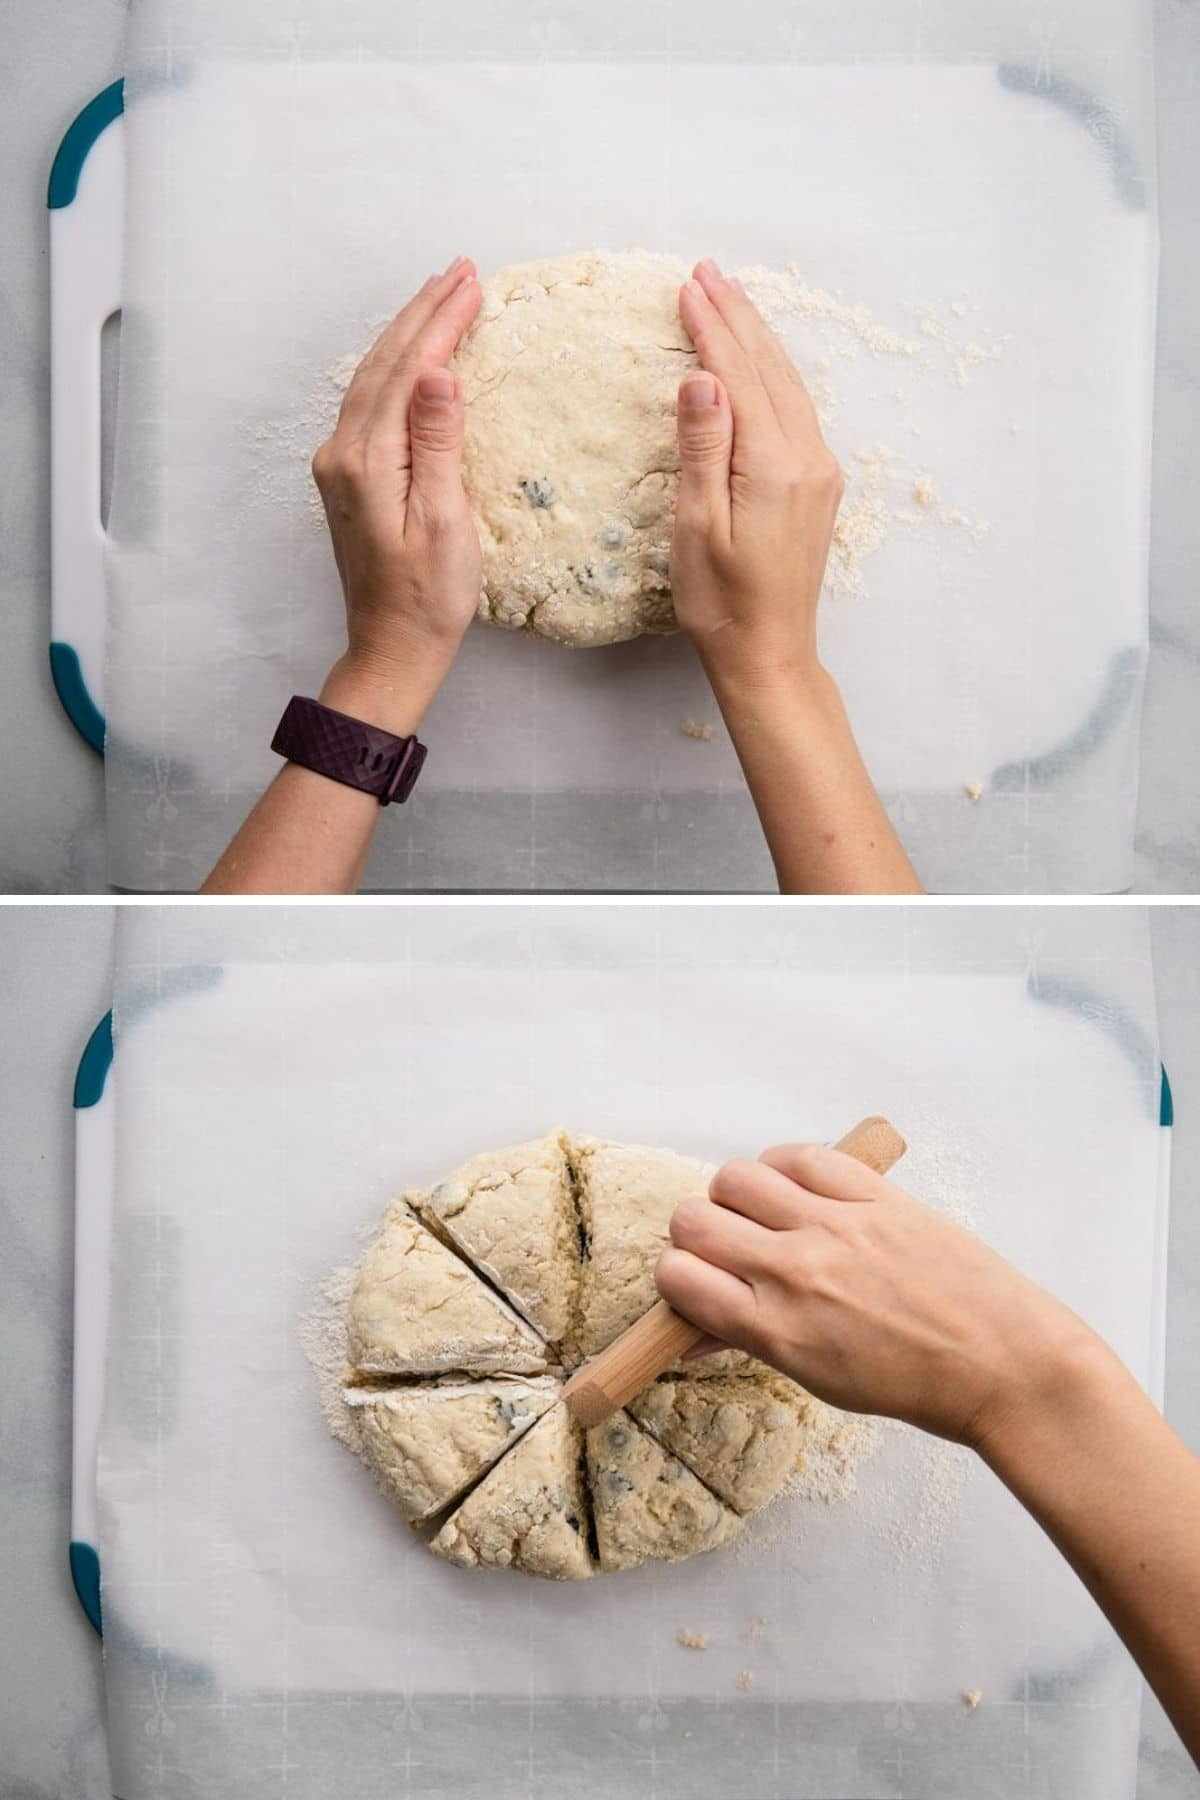 two images showing how to shape and cut scone dough